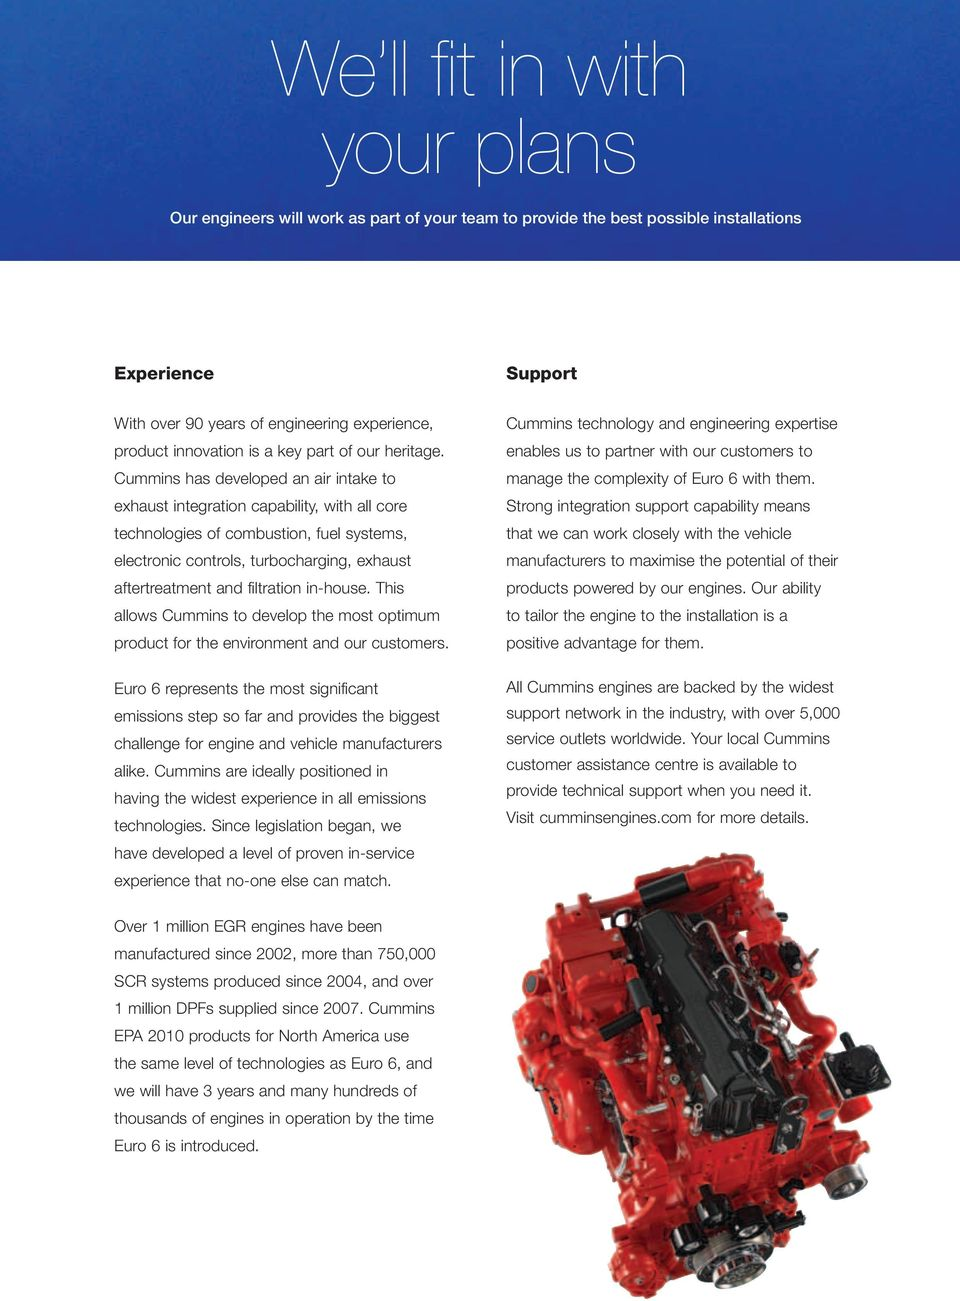 Cummins has developed an air intake to exhaust integration capability, with all core technologies of combustion, fuel systems, electronic controls, turbocharging, exhaust aftertreatment and